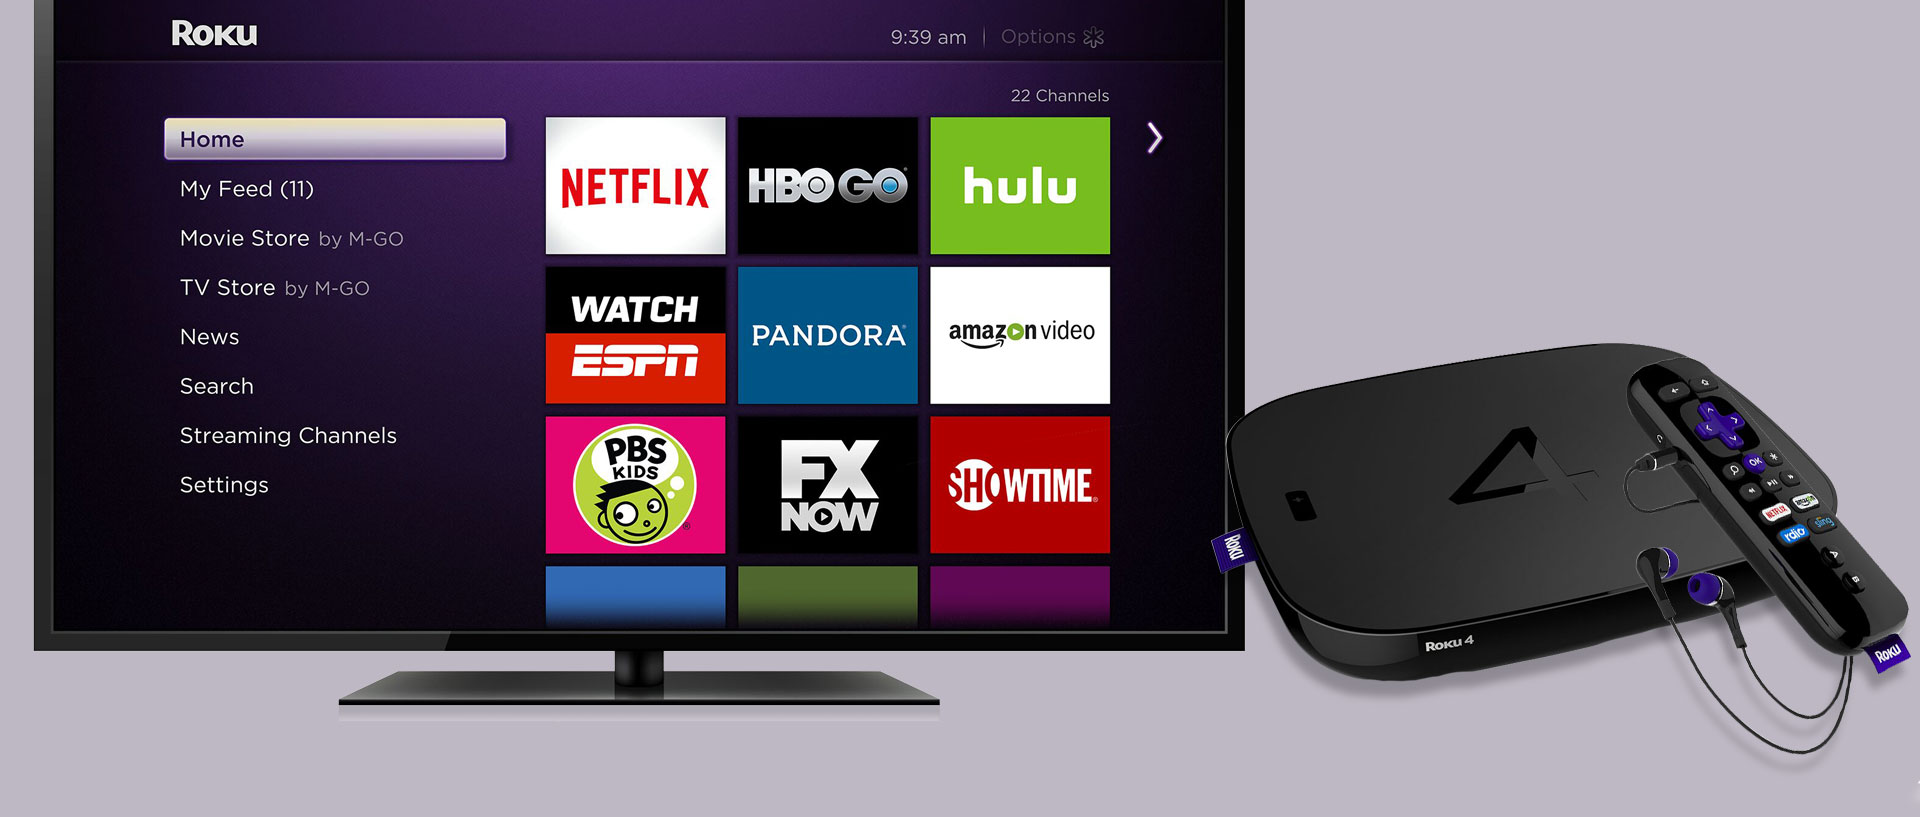 Roku 4 Review Is It Worth The Price Consumer Reports